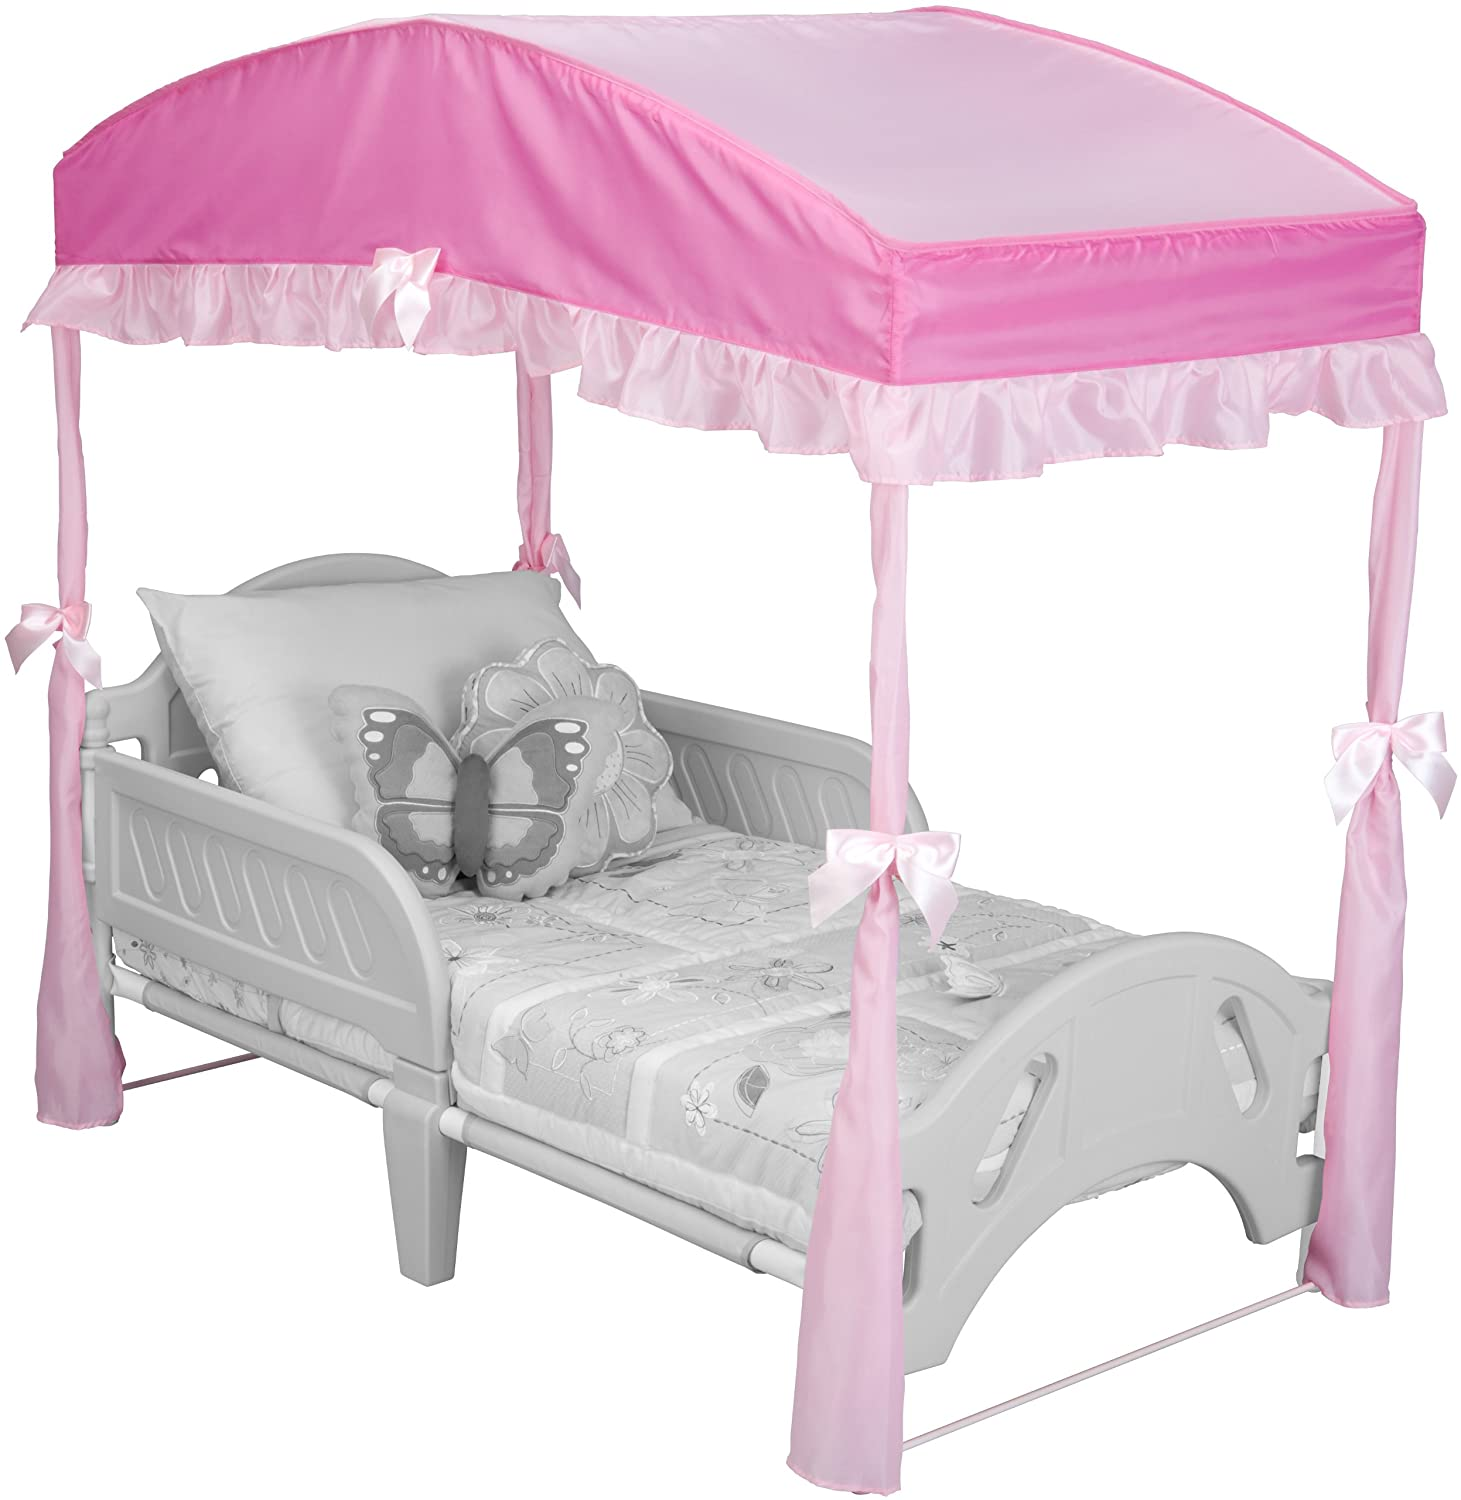 Girls Toddler Bed Canopy Pink Bedroom Princess Furniture